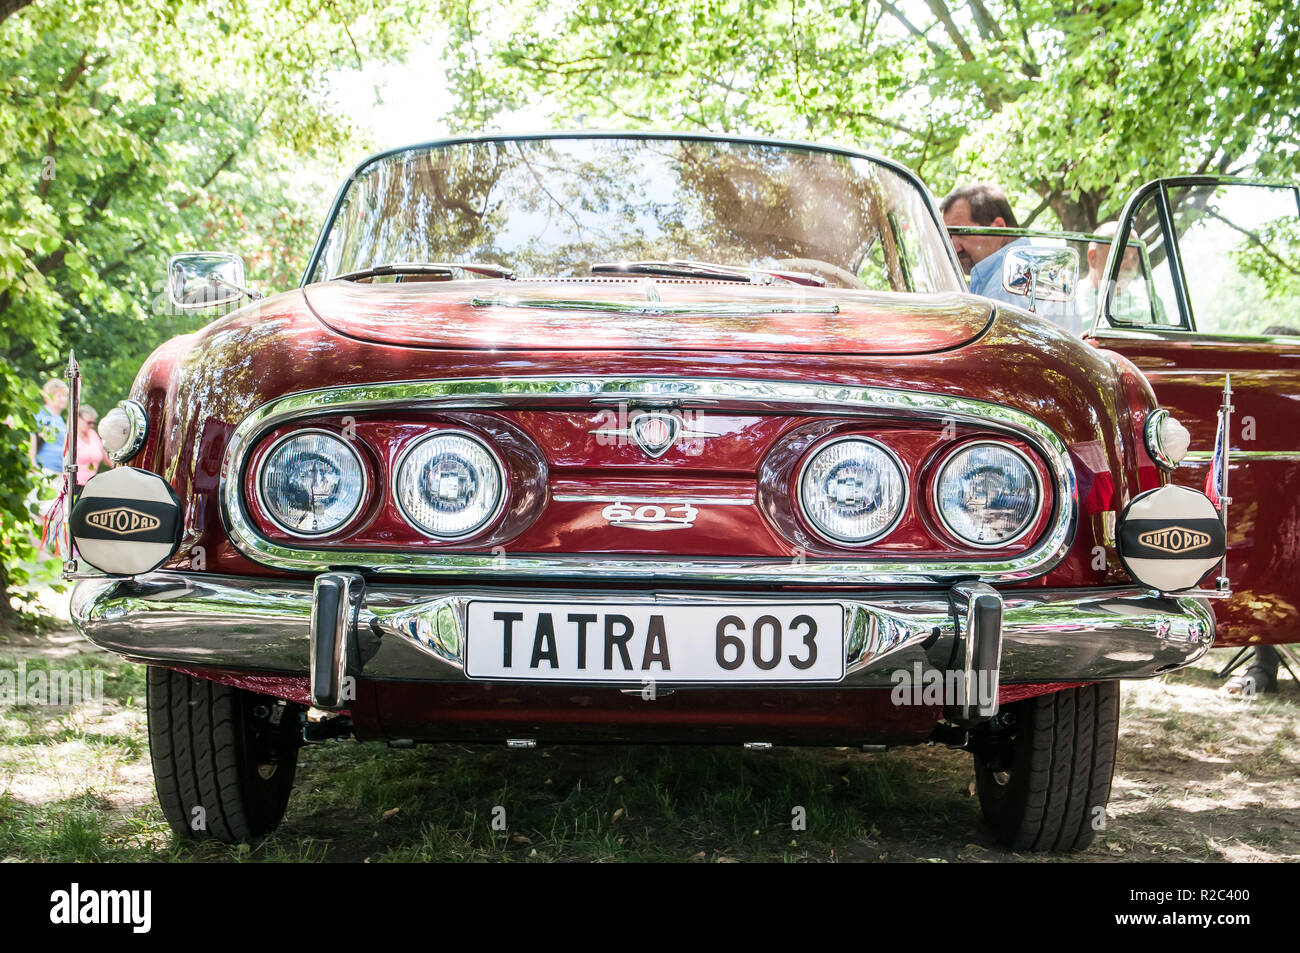 Prague, Czech Republic, May 26, 2018, Tatra 603 was a passenger car manufactured by Tatra National Company Kopřivnice between 1955 and 1975 - Stock Image